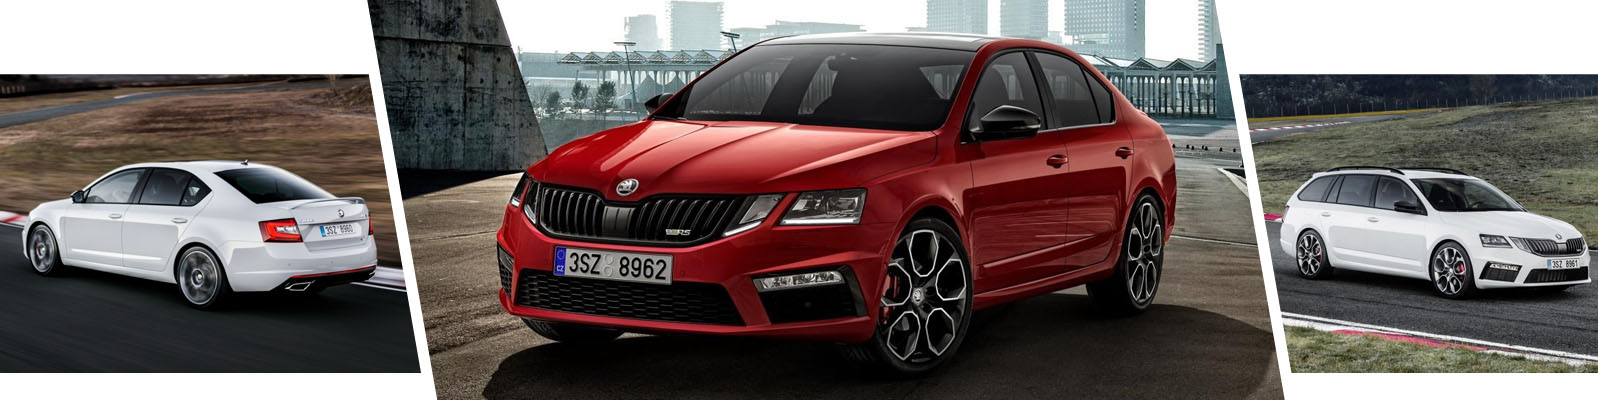 The thrilling SKODA vRS Octavia range includes the new vRS245 from Rainworth ŠKODA, Mansfield, Nottinghamshire.